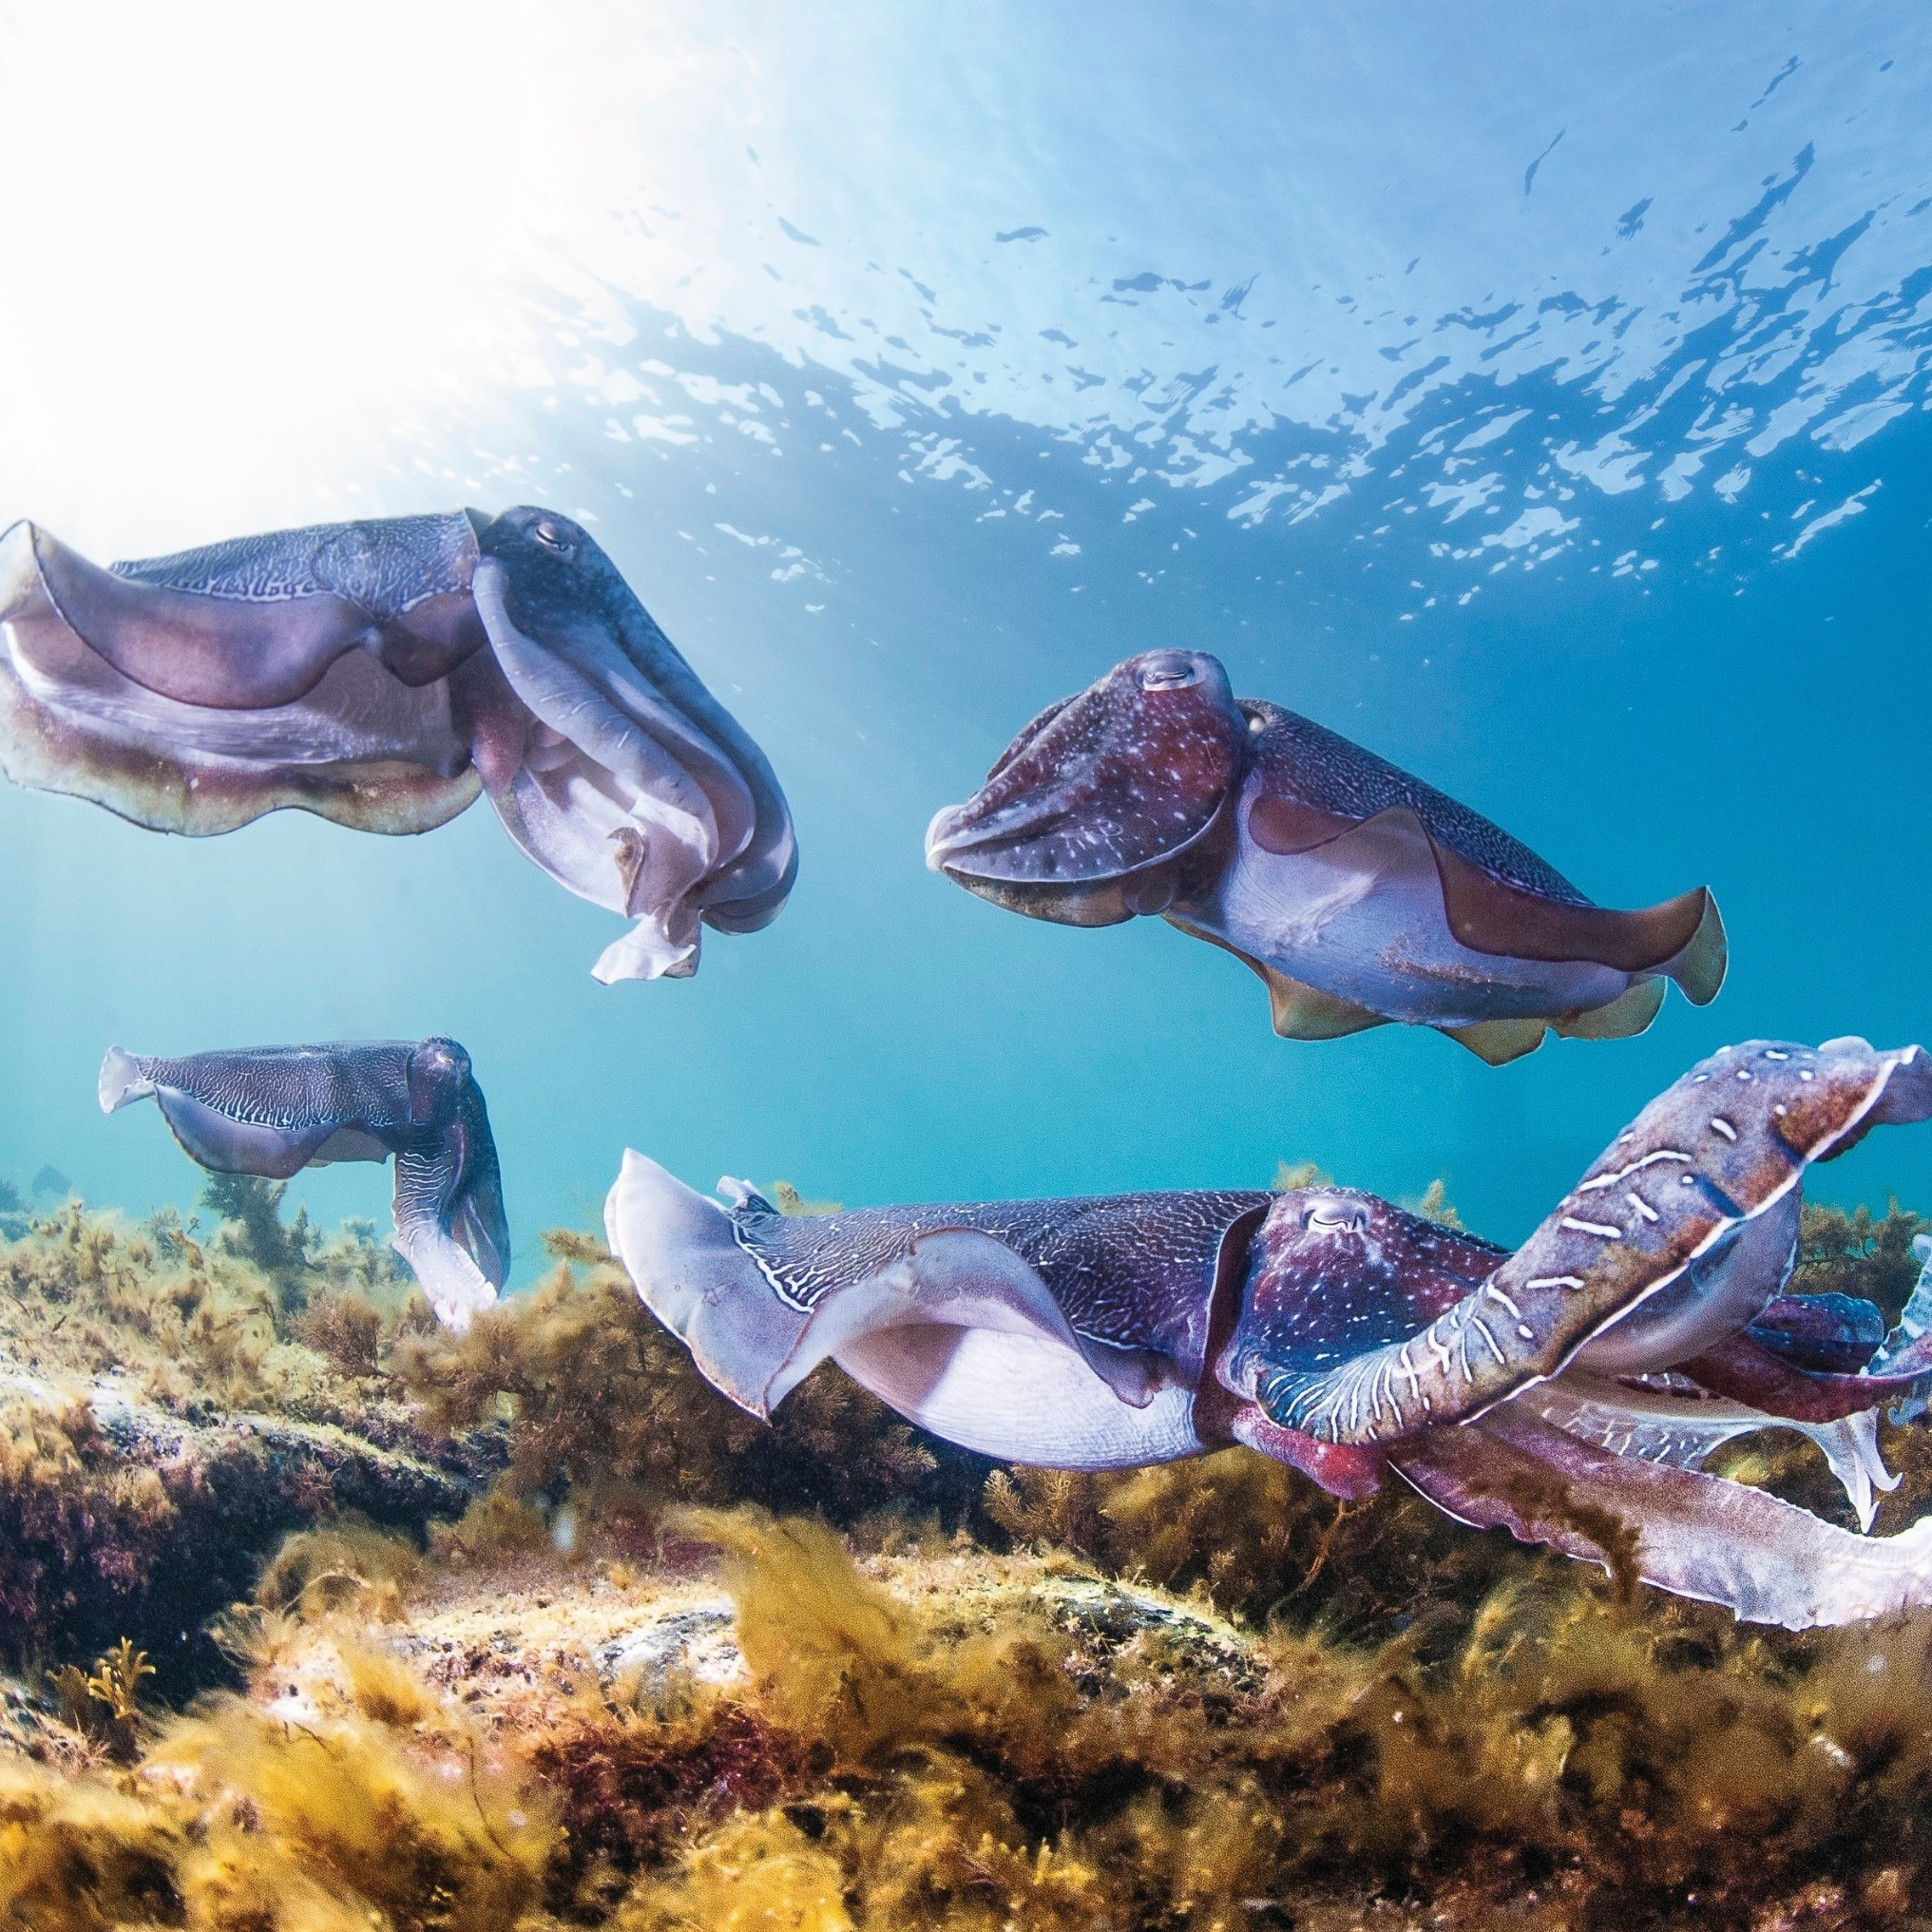 Cuttlefish, Stony Point © Carl Charter